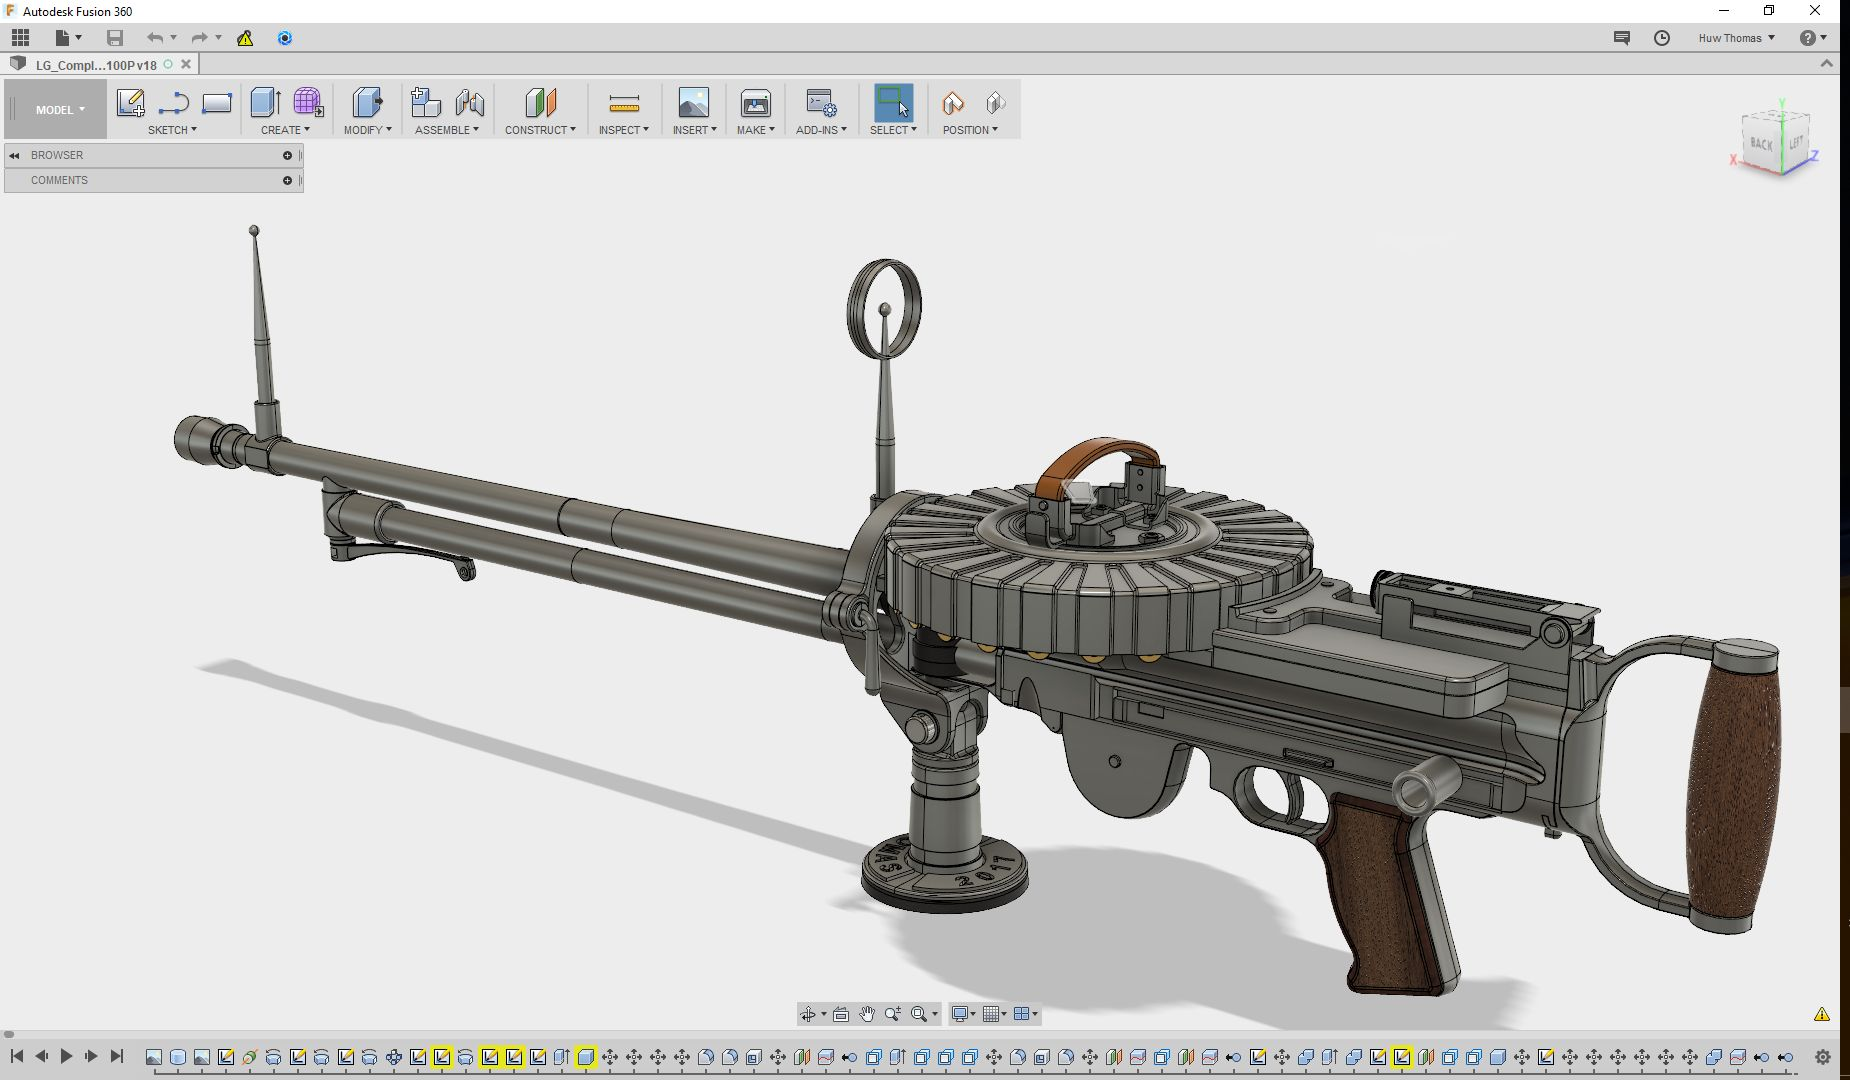 1914 Lewis Gun for Airco DH2 WW1 fighter|Autodesk Online Gallery